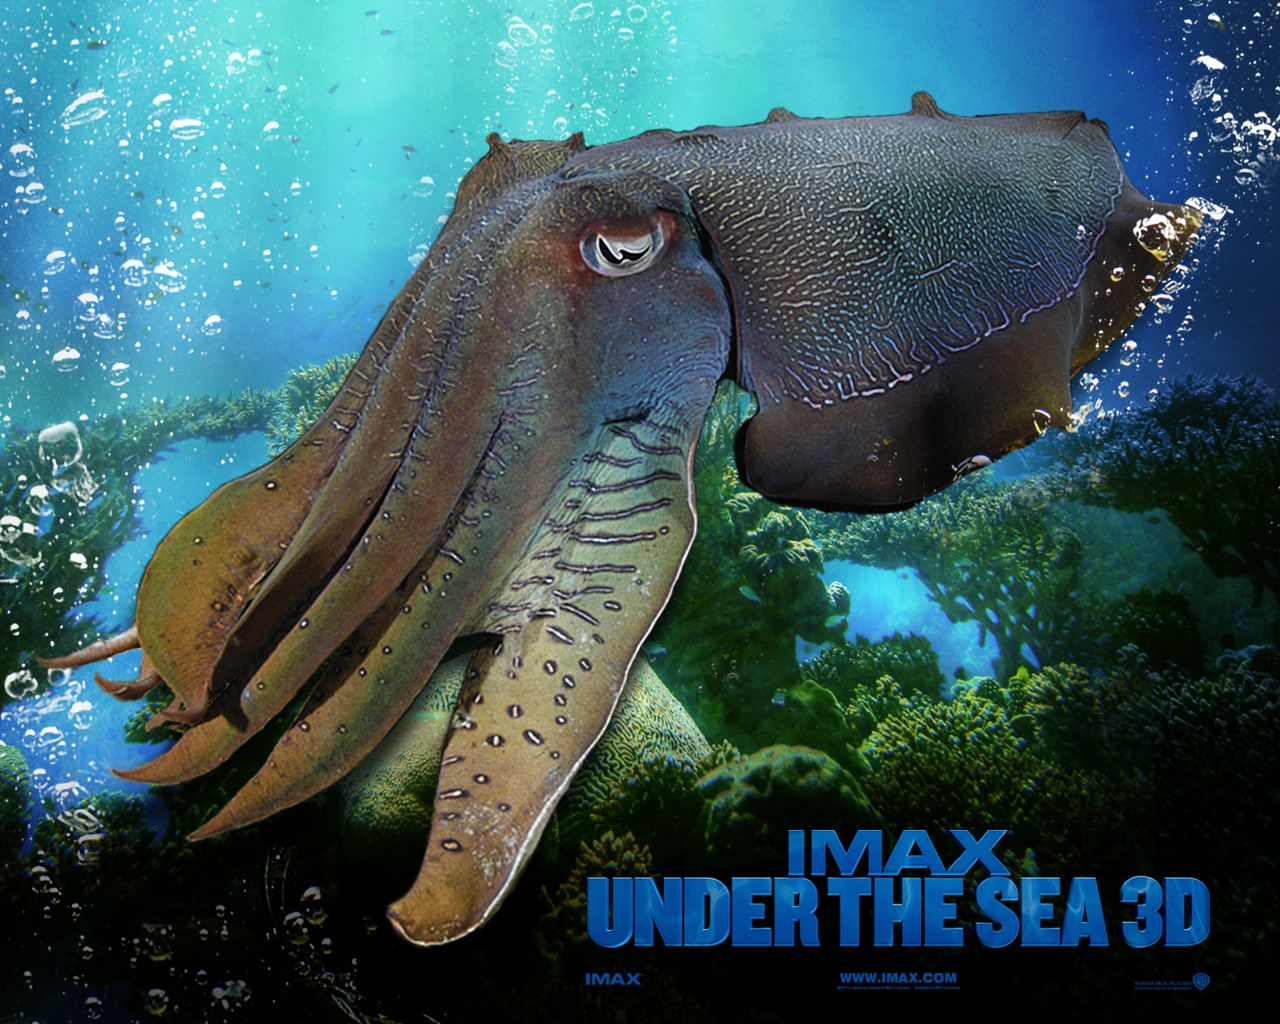 Imax Under The Sea 6 Wallpapers In Jpg Format For Free Download